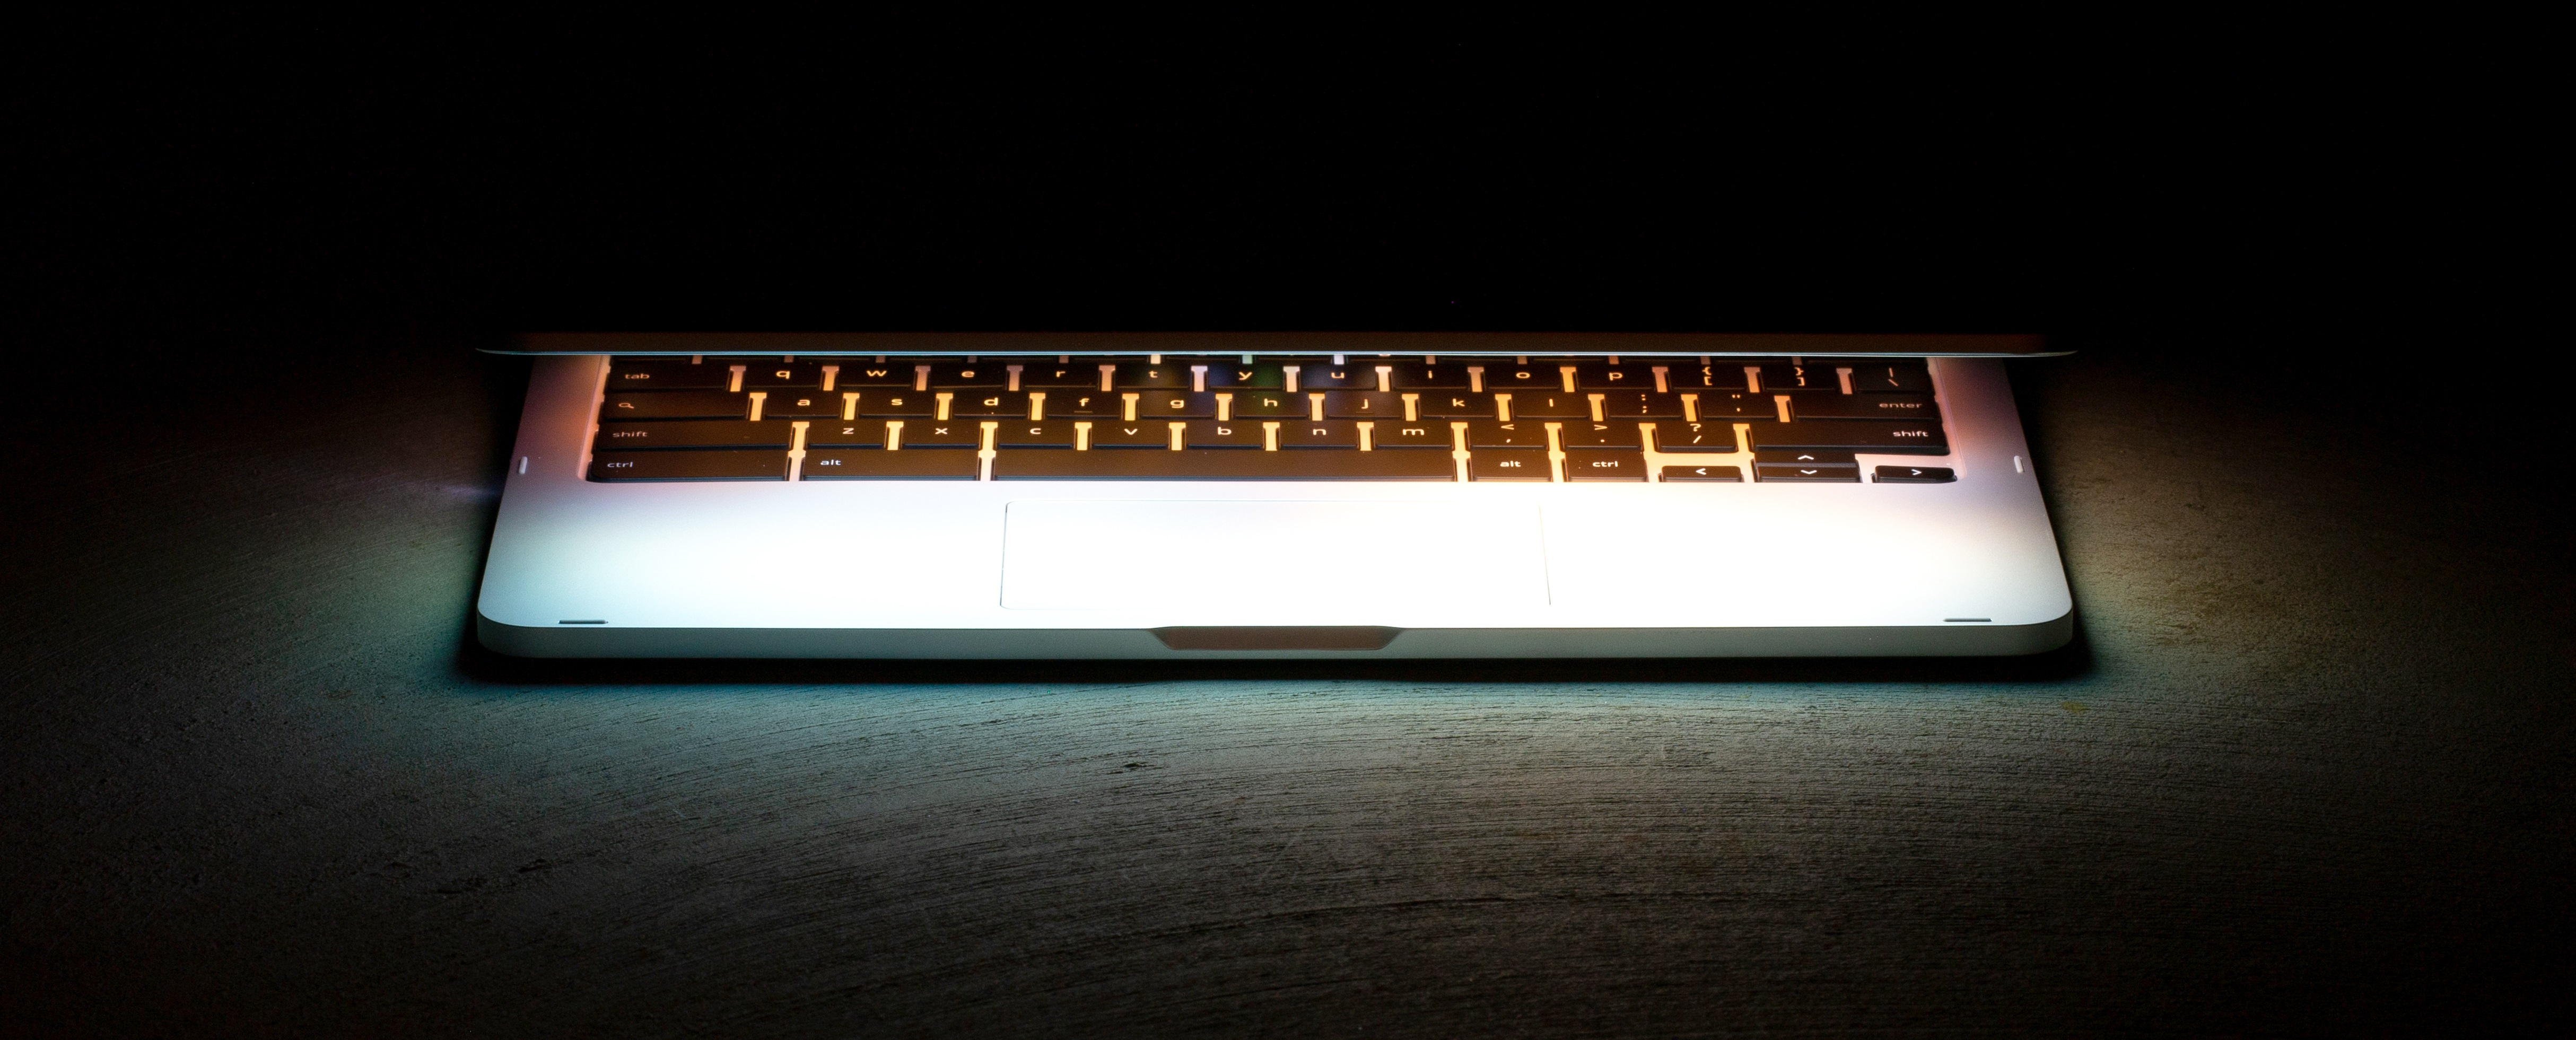 photo of a glowing half-open laptop